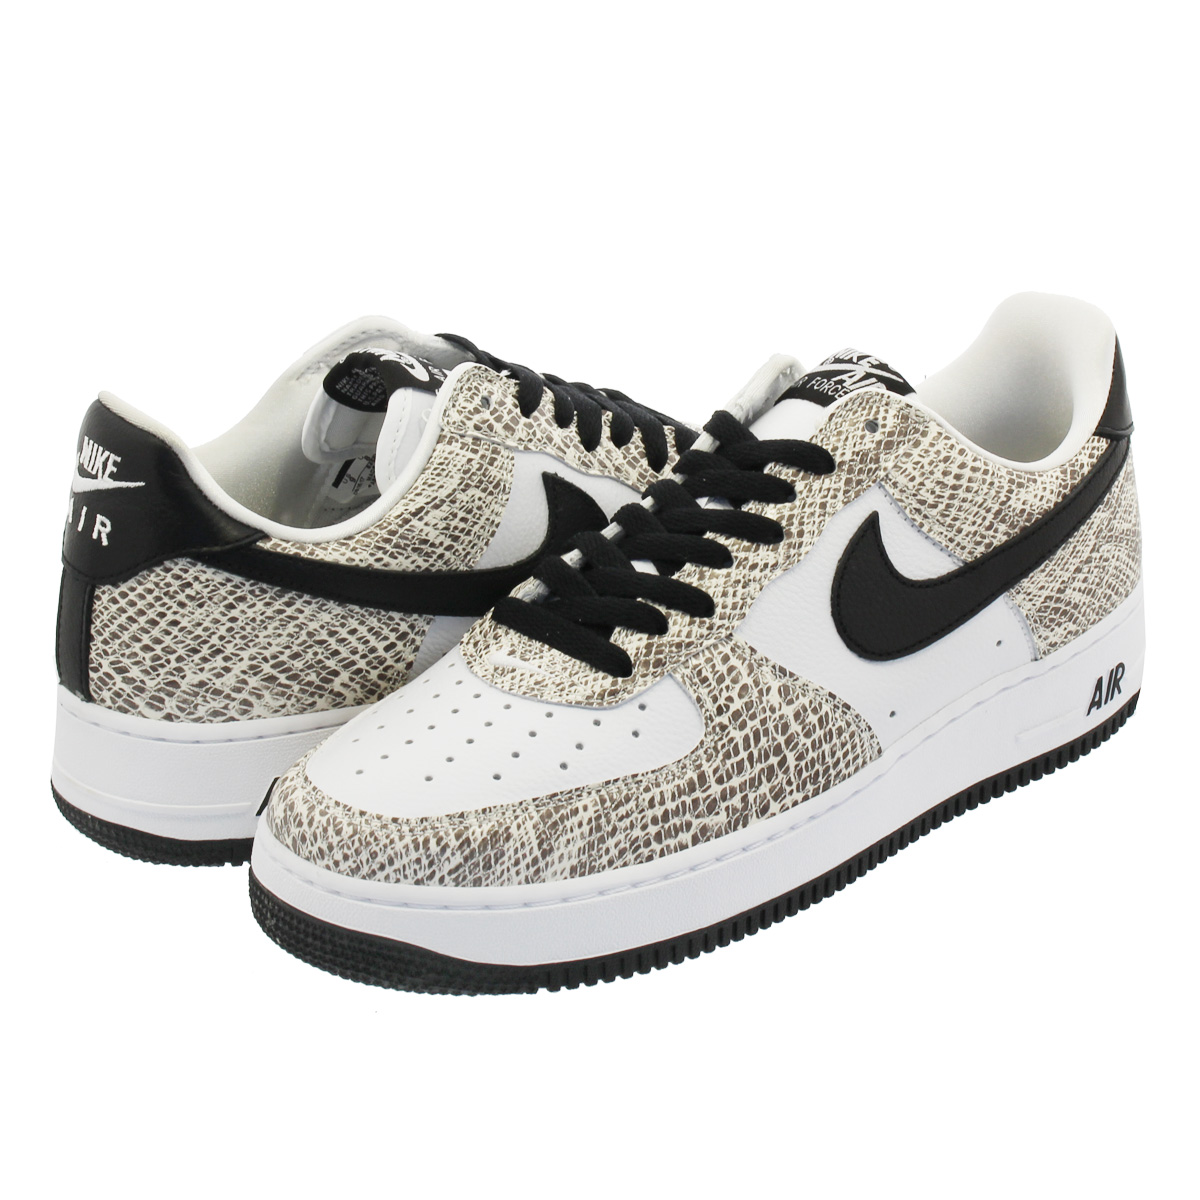 NIKE AIR FORCE 1 RETRO 【COCOA SNAKE】 ナイキ エア フォース 1 レトロ TRUE WHITE/BLACK/COCOA 845053-104